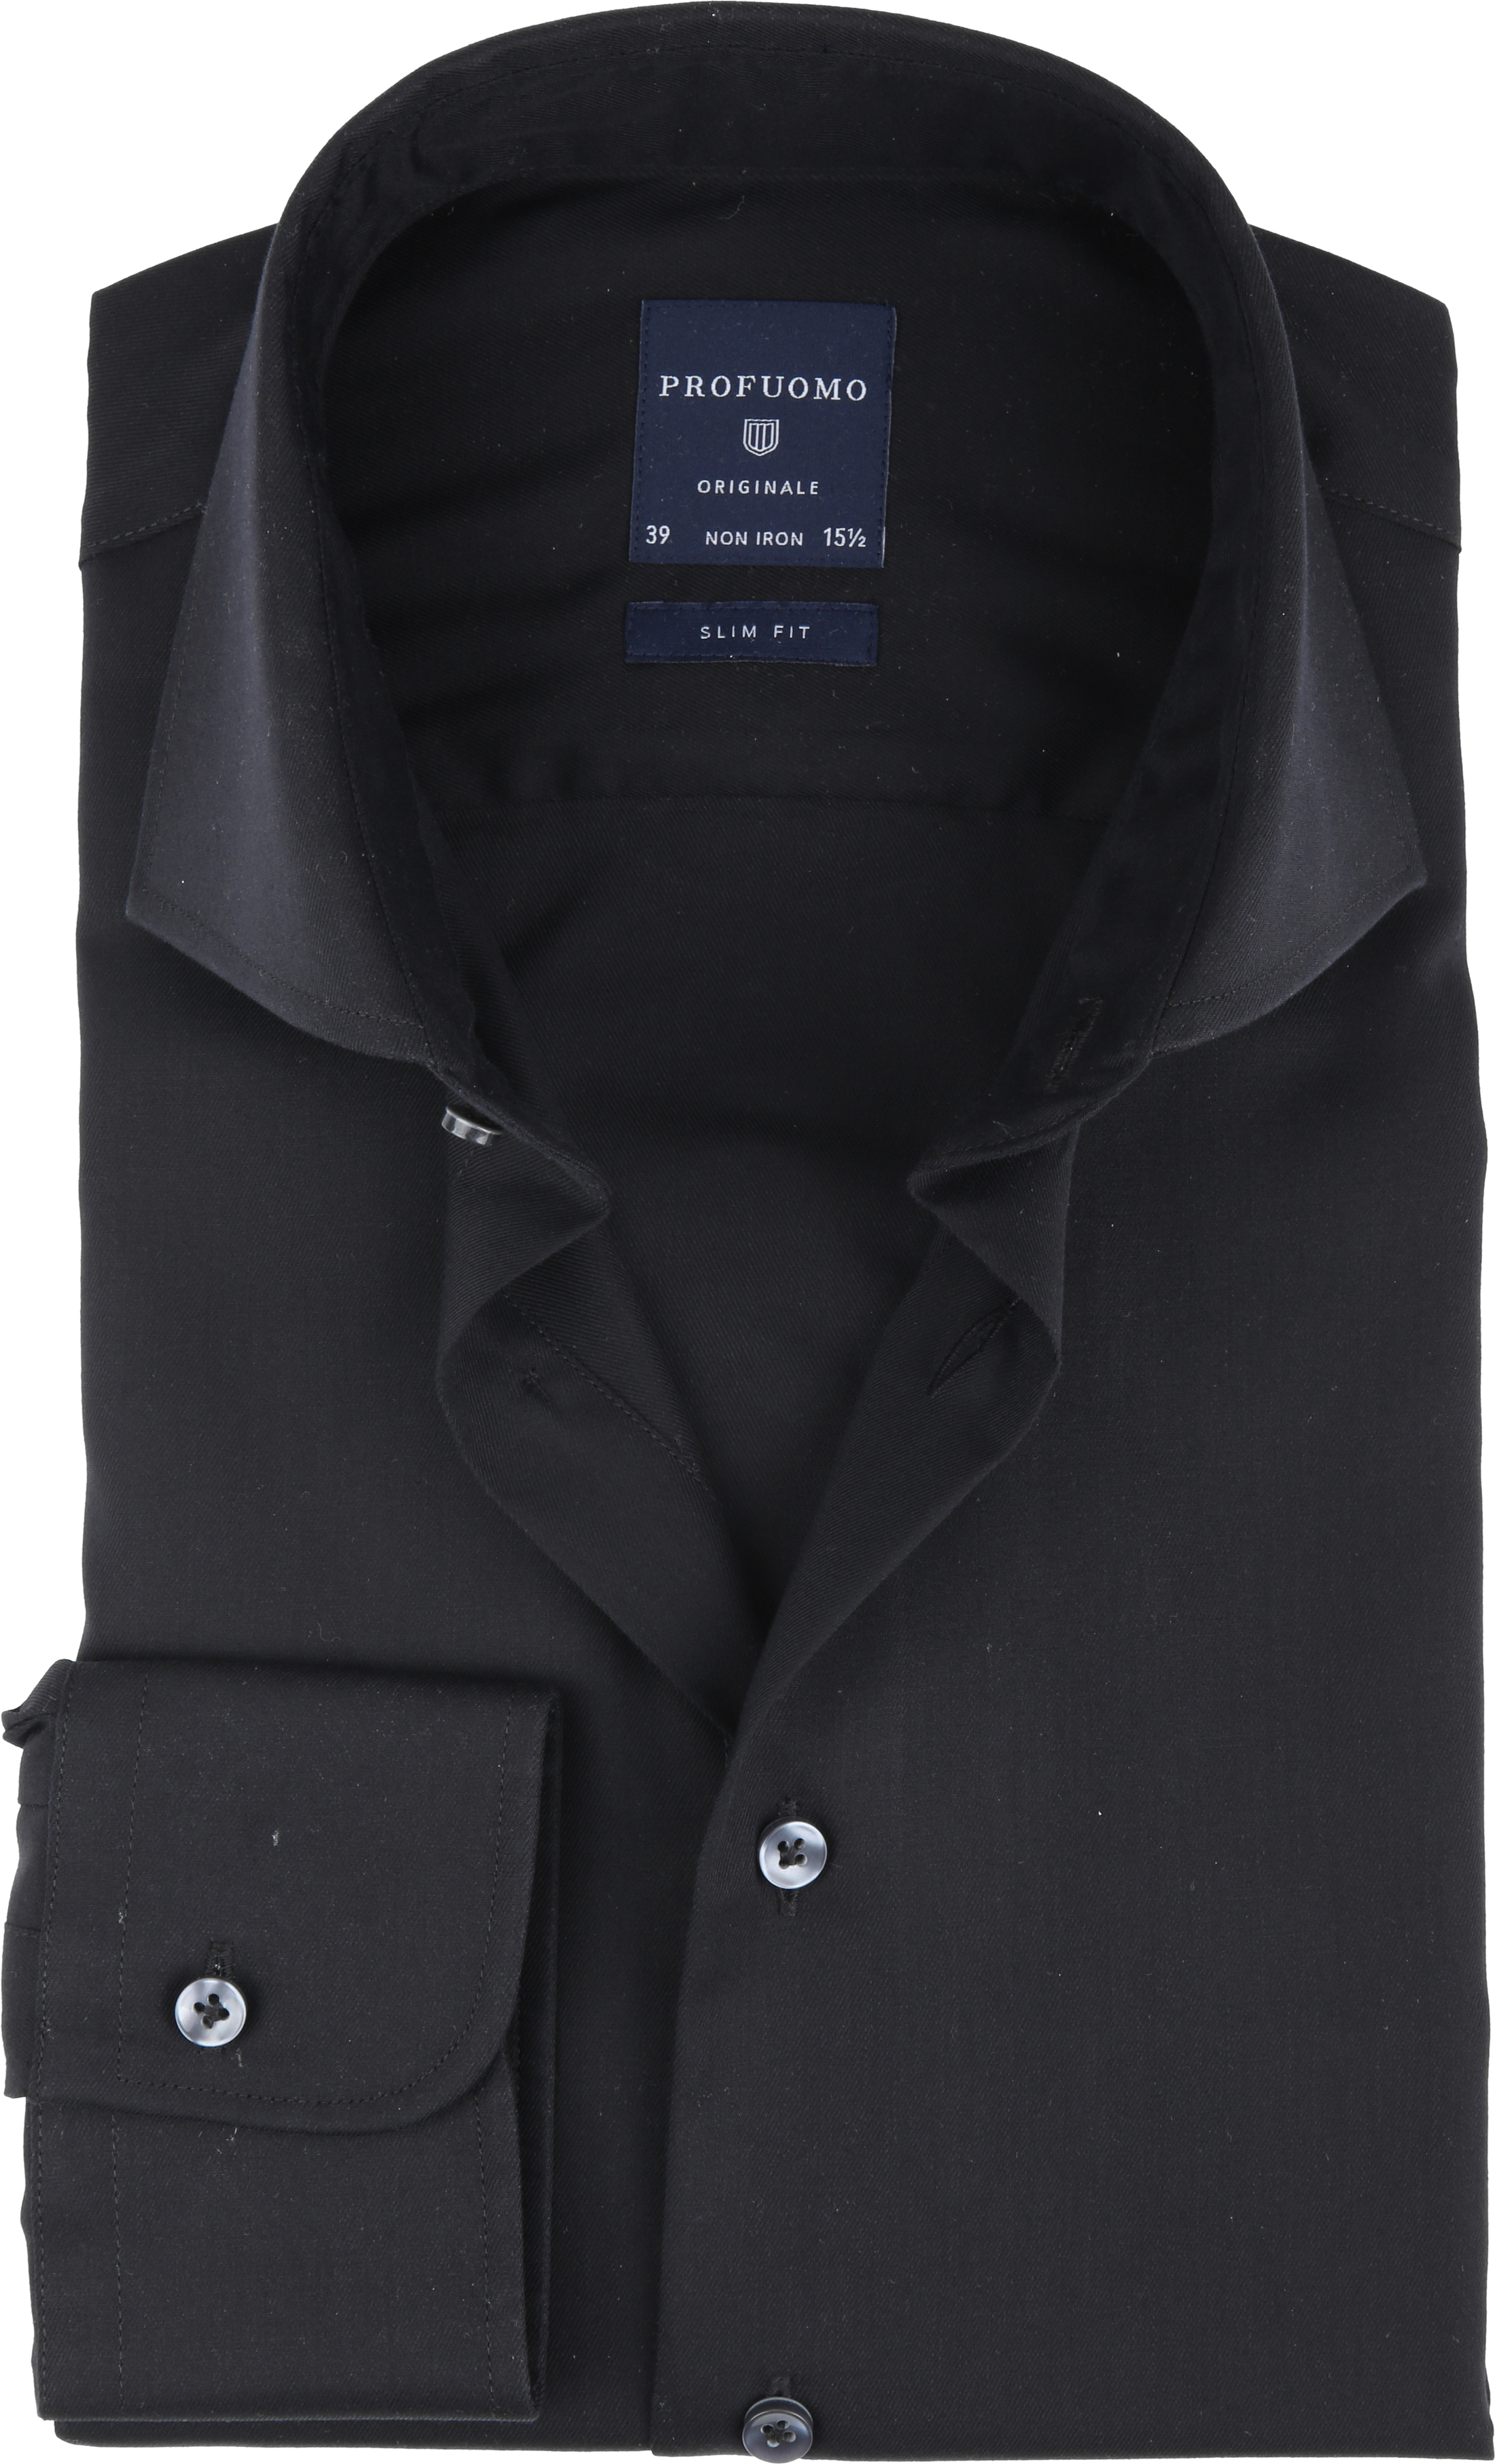 Profuomo Non Iron Shirt Black foto 0